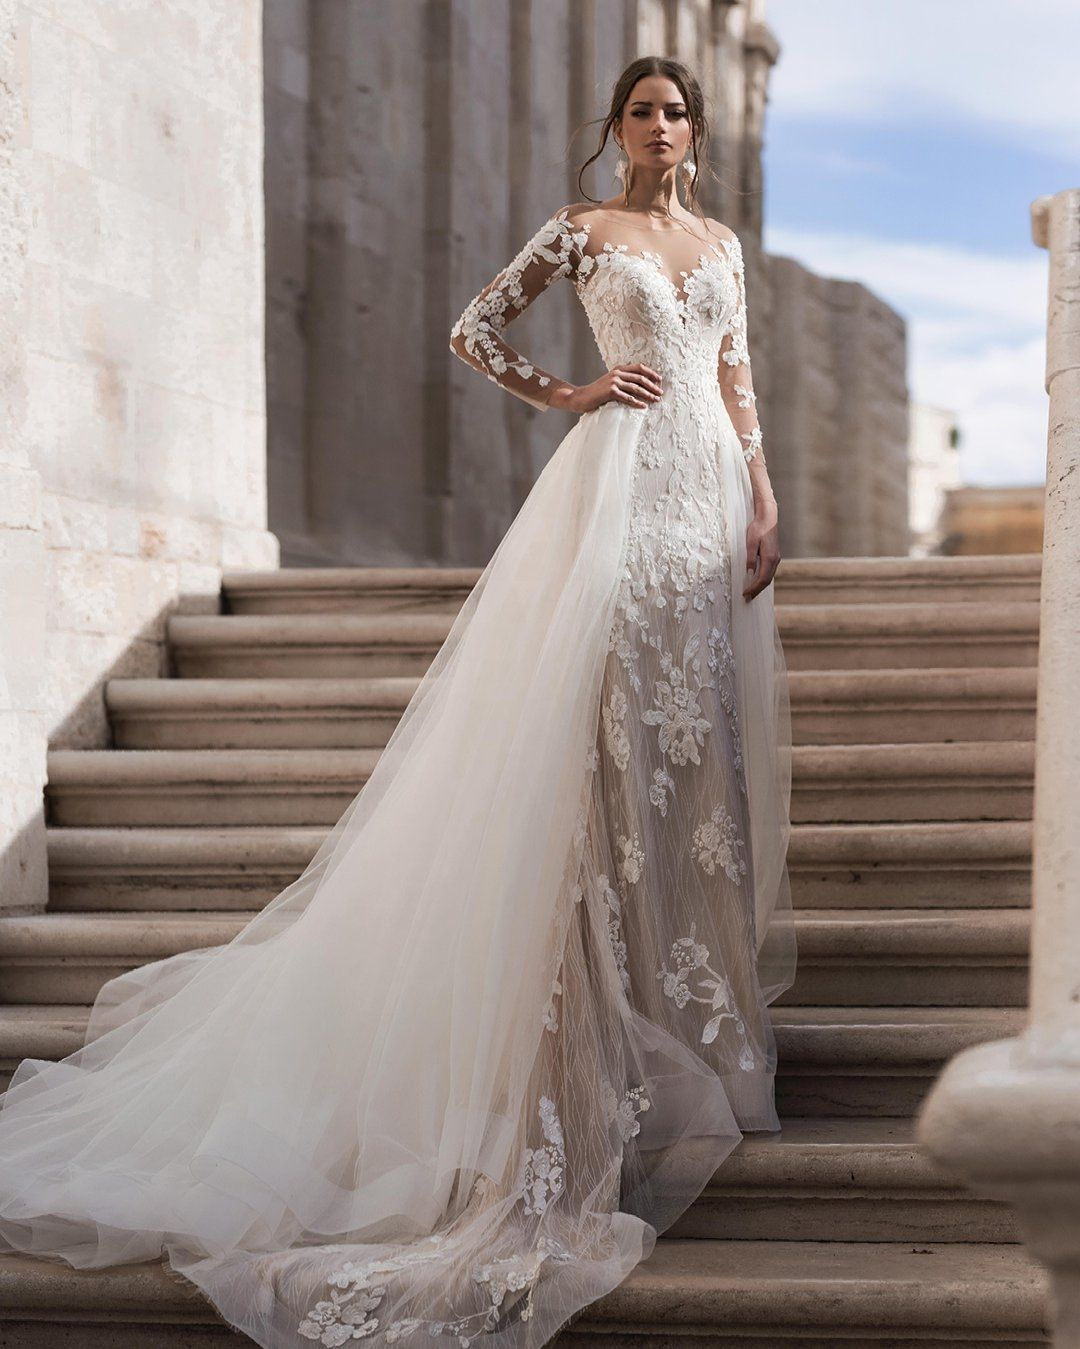 Blunny On Instagram The Blunny Sensation The Original Dress Brenda 20024 Covered With Detachable Train Wedding Dress Online Wedding Dress Wedding Dresses [ 1349 x 1080 Pixel ]